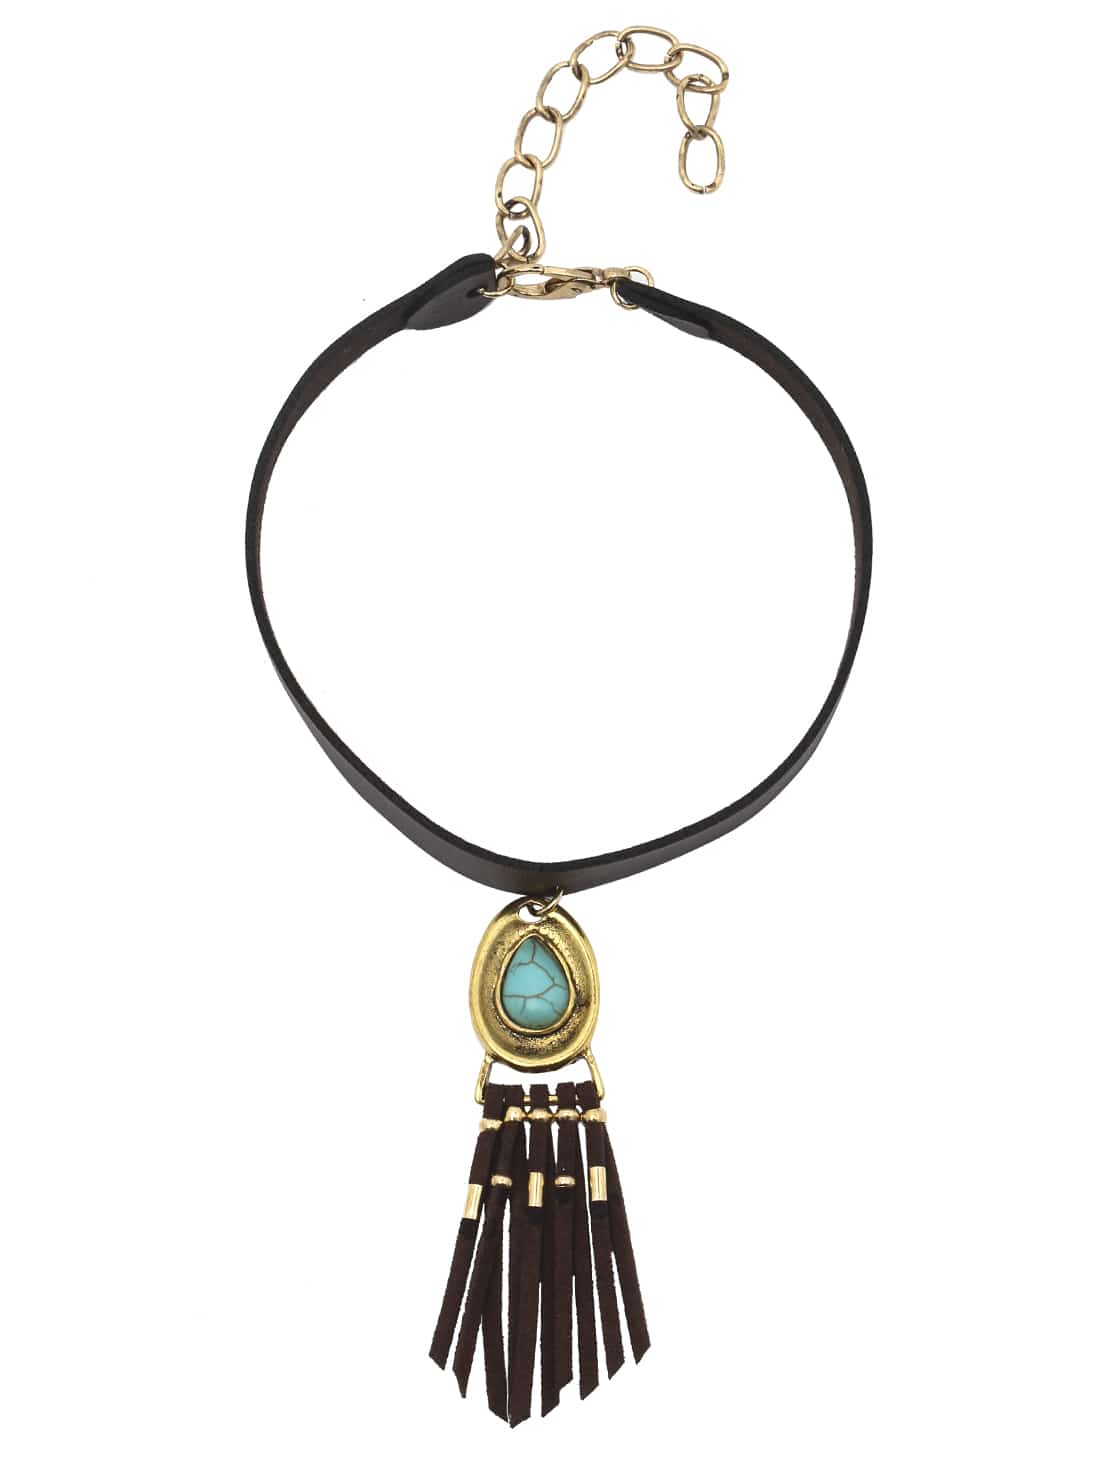 Antique Turquoise Overlay In Silver And Gold Metal With Tassel Choker Necklace